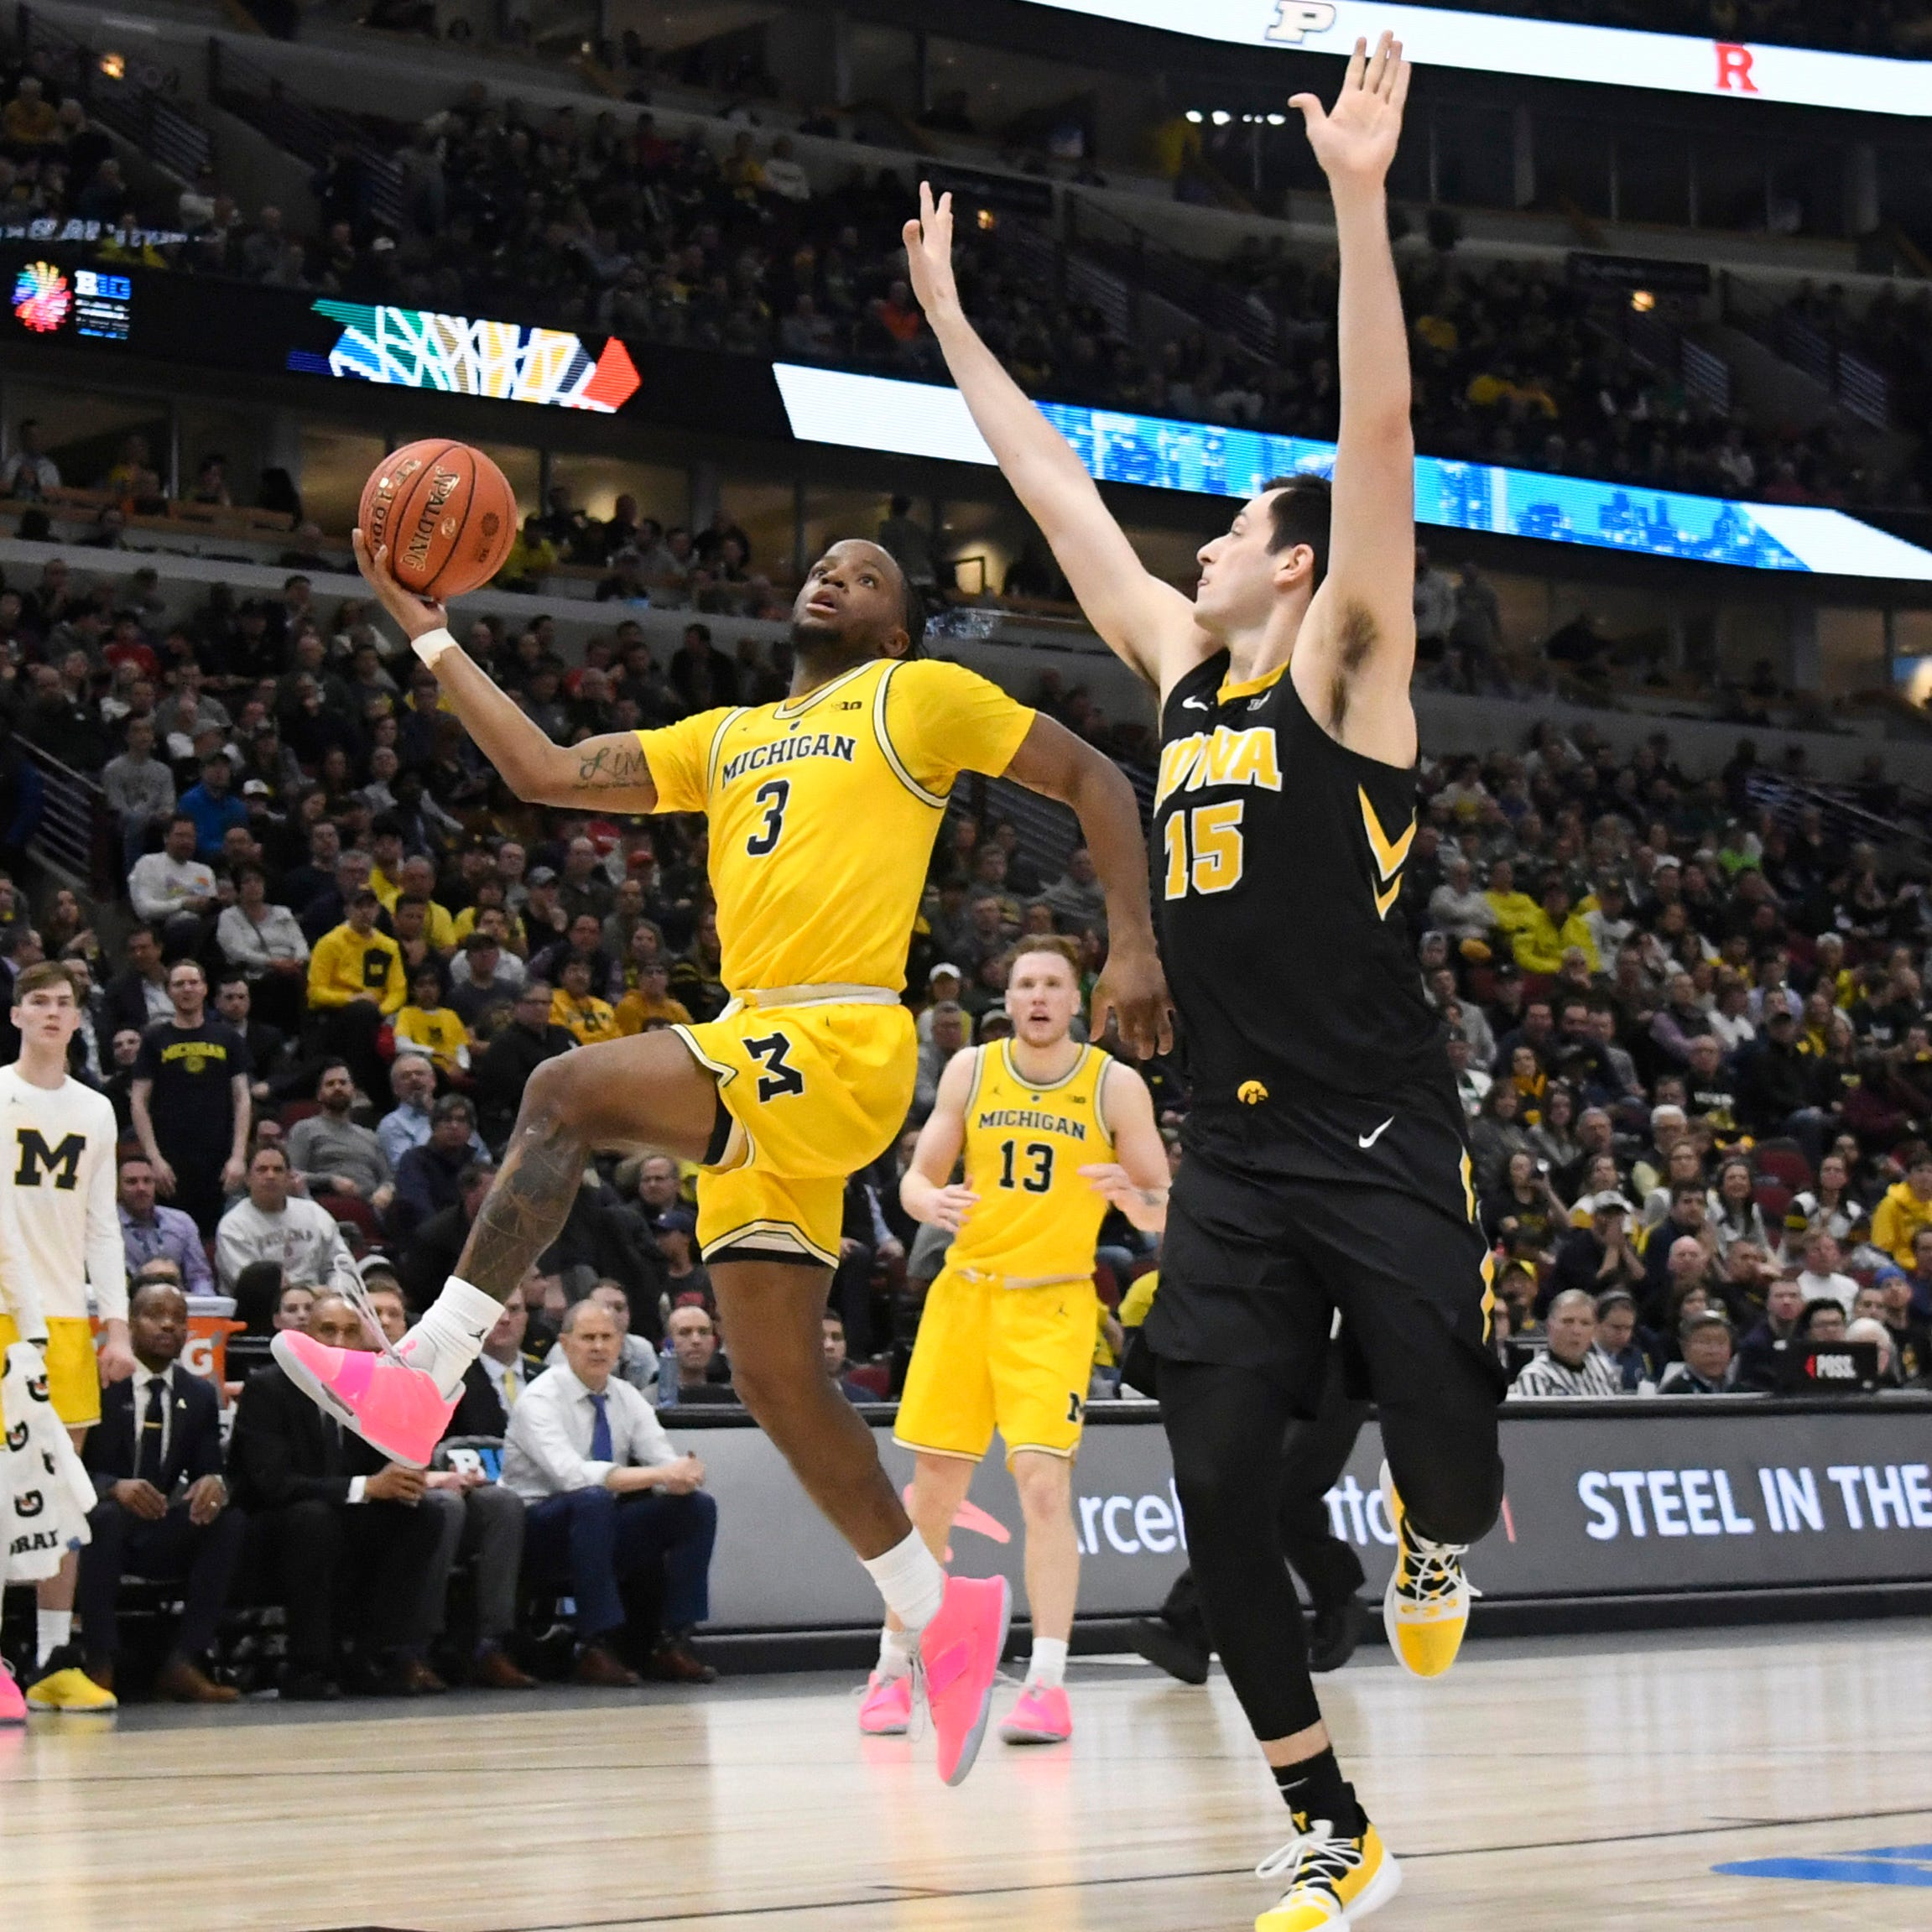 Leistikow: Hawkeyes turn attention to making an NCAA run after blowout loss to Michigan